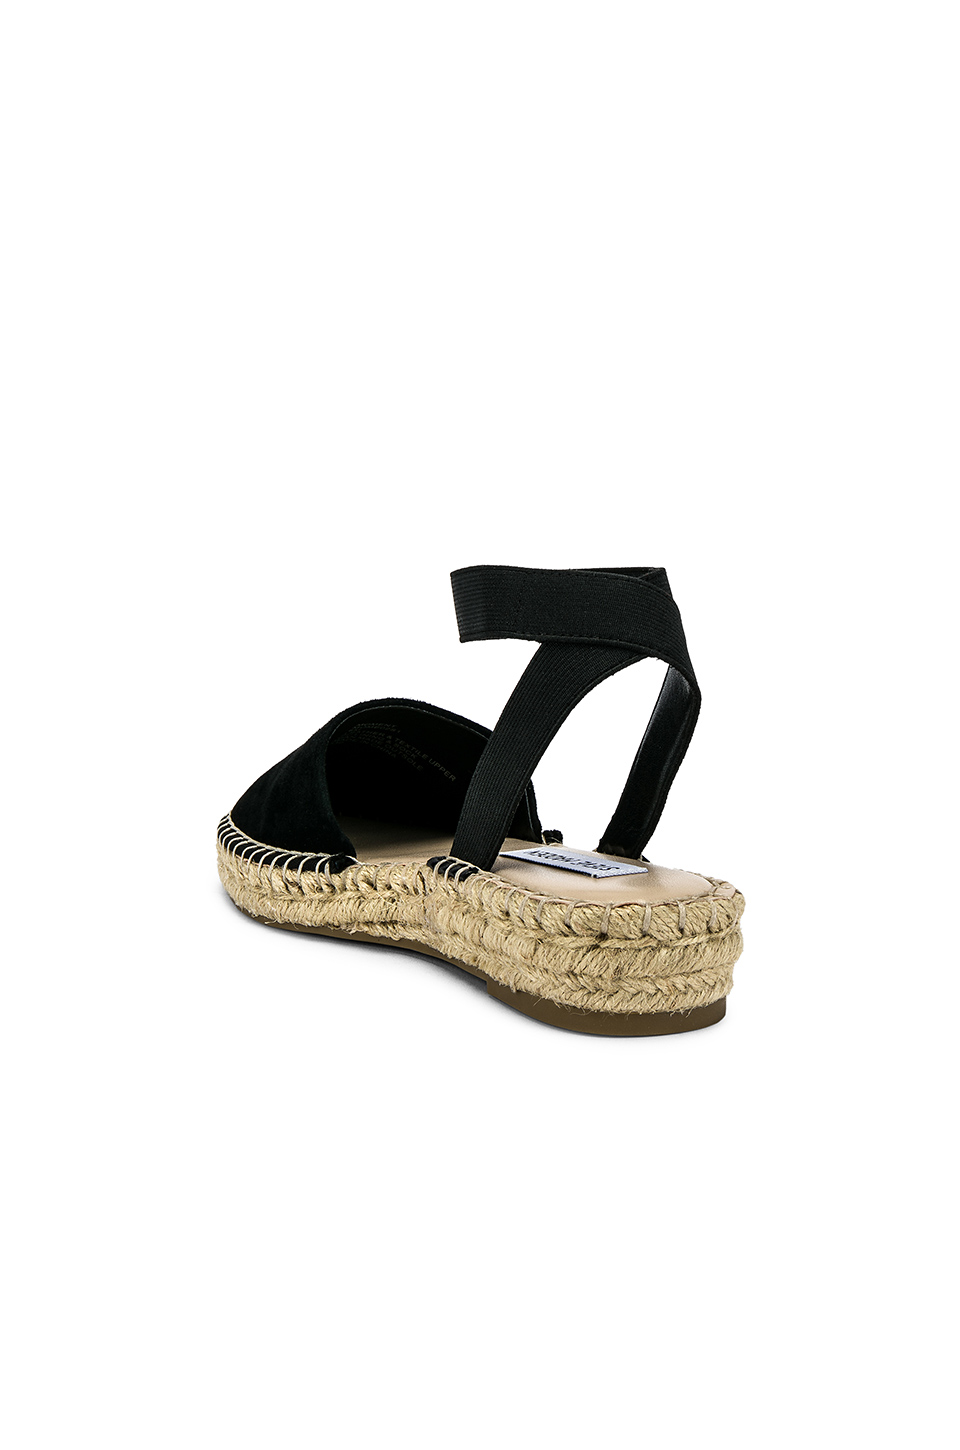 5e9e9c991 Buy Original Steve Madden Moment Suede Espadrille at Indonesia ...